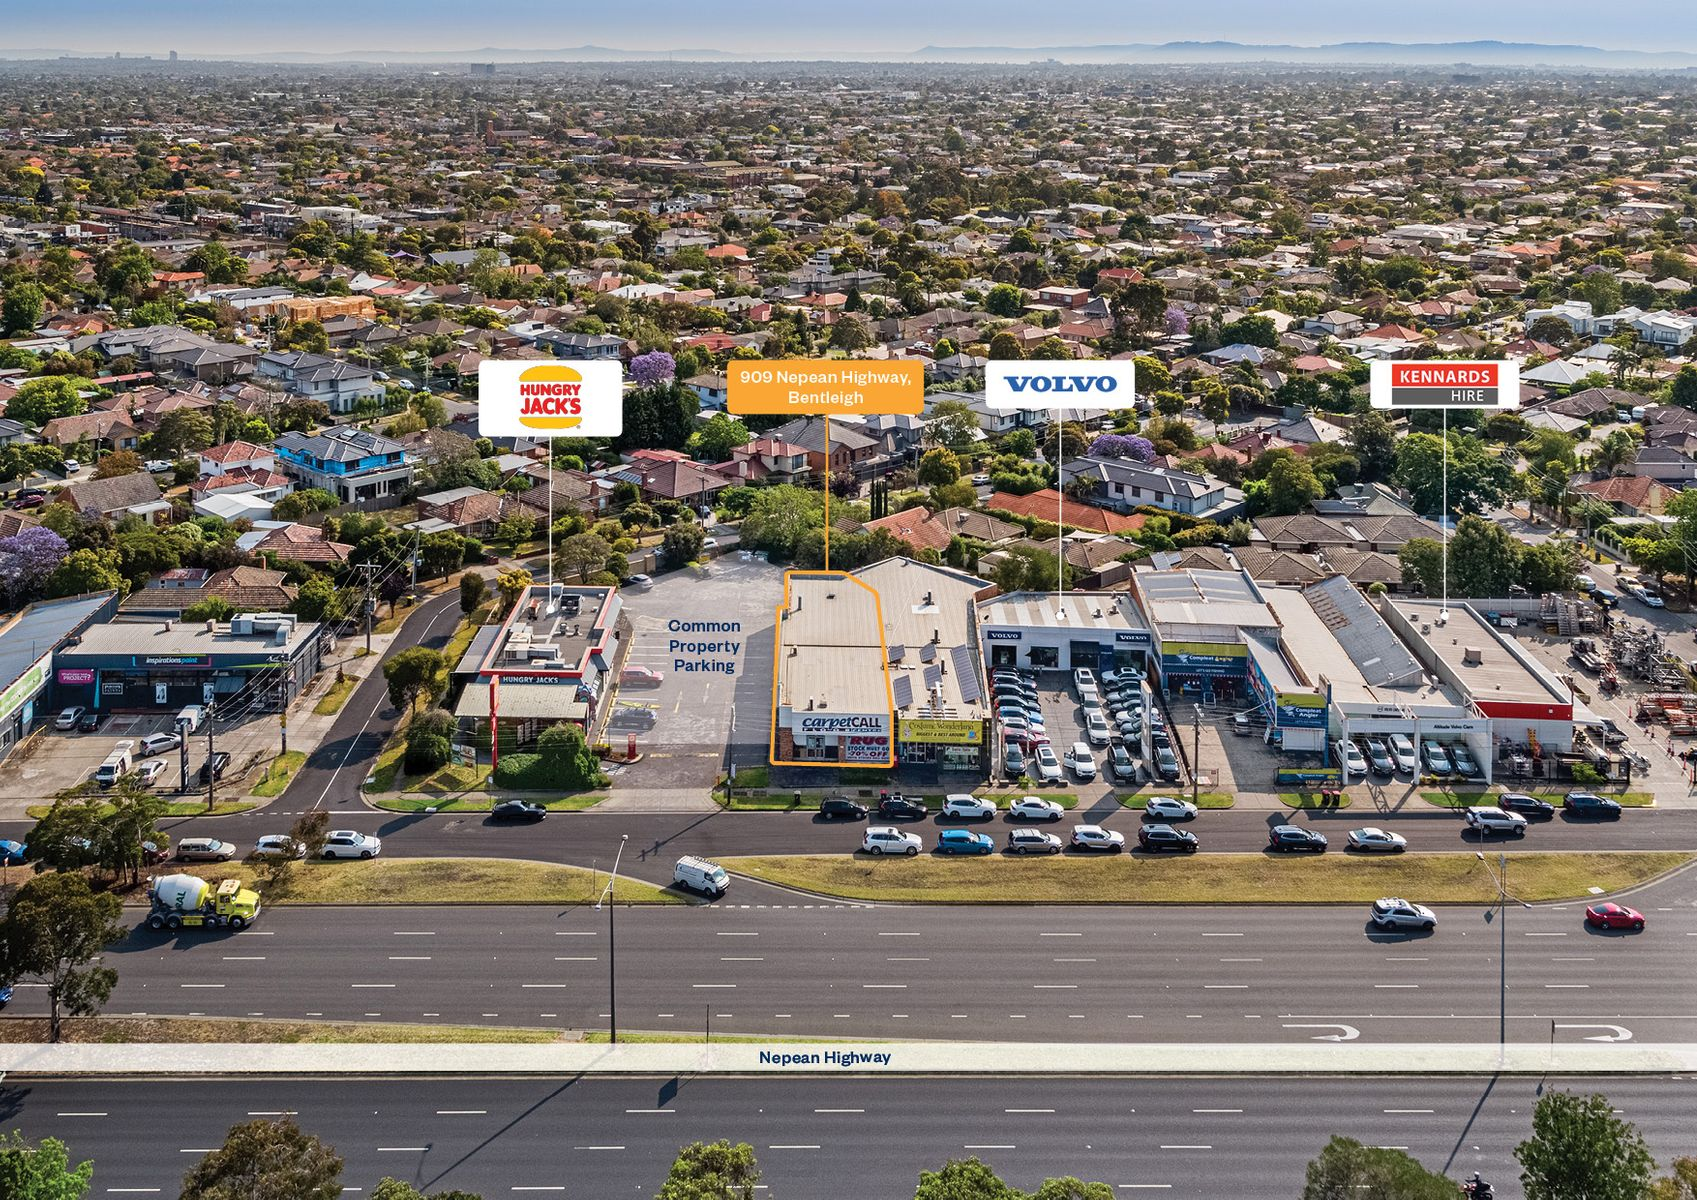 TC0143 909 Nepean Highway, Bentleigh MarkUp 0007 V2